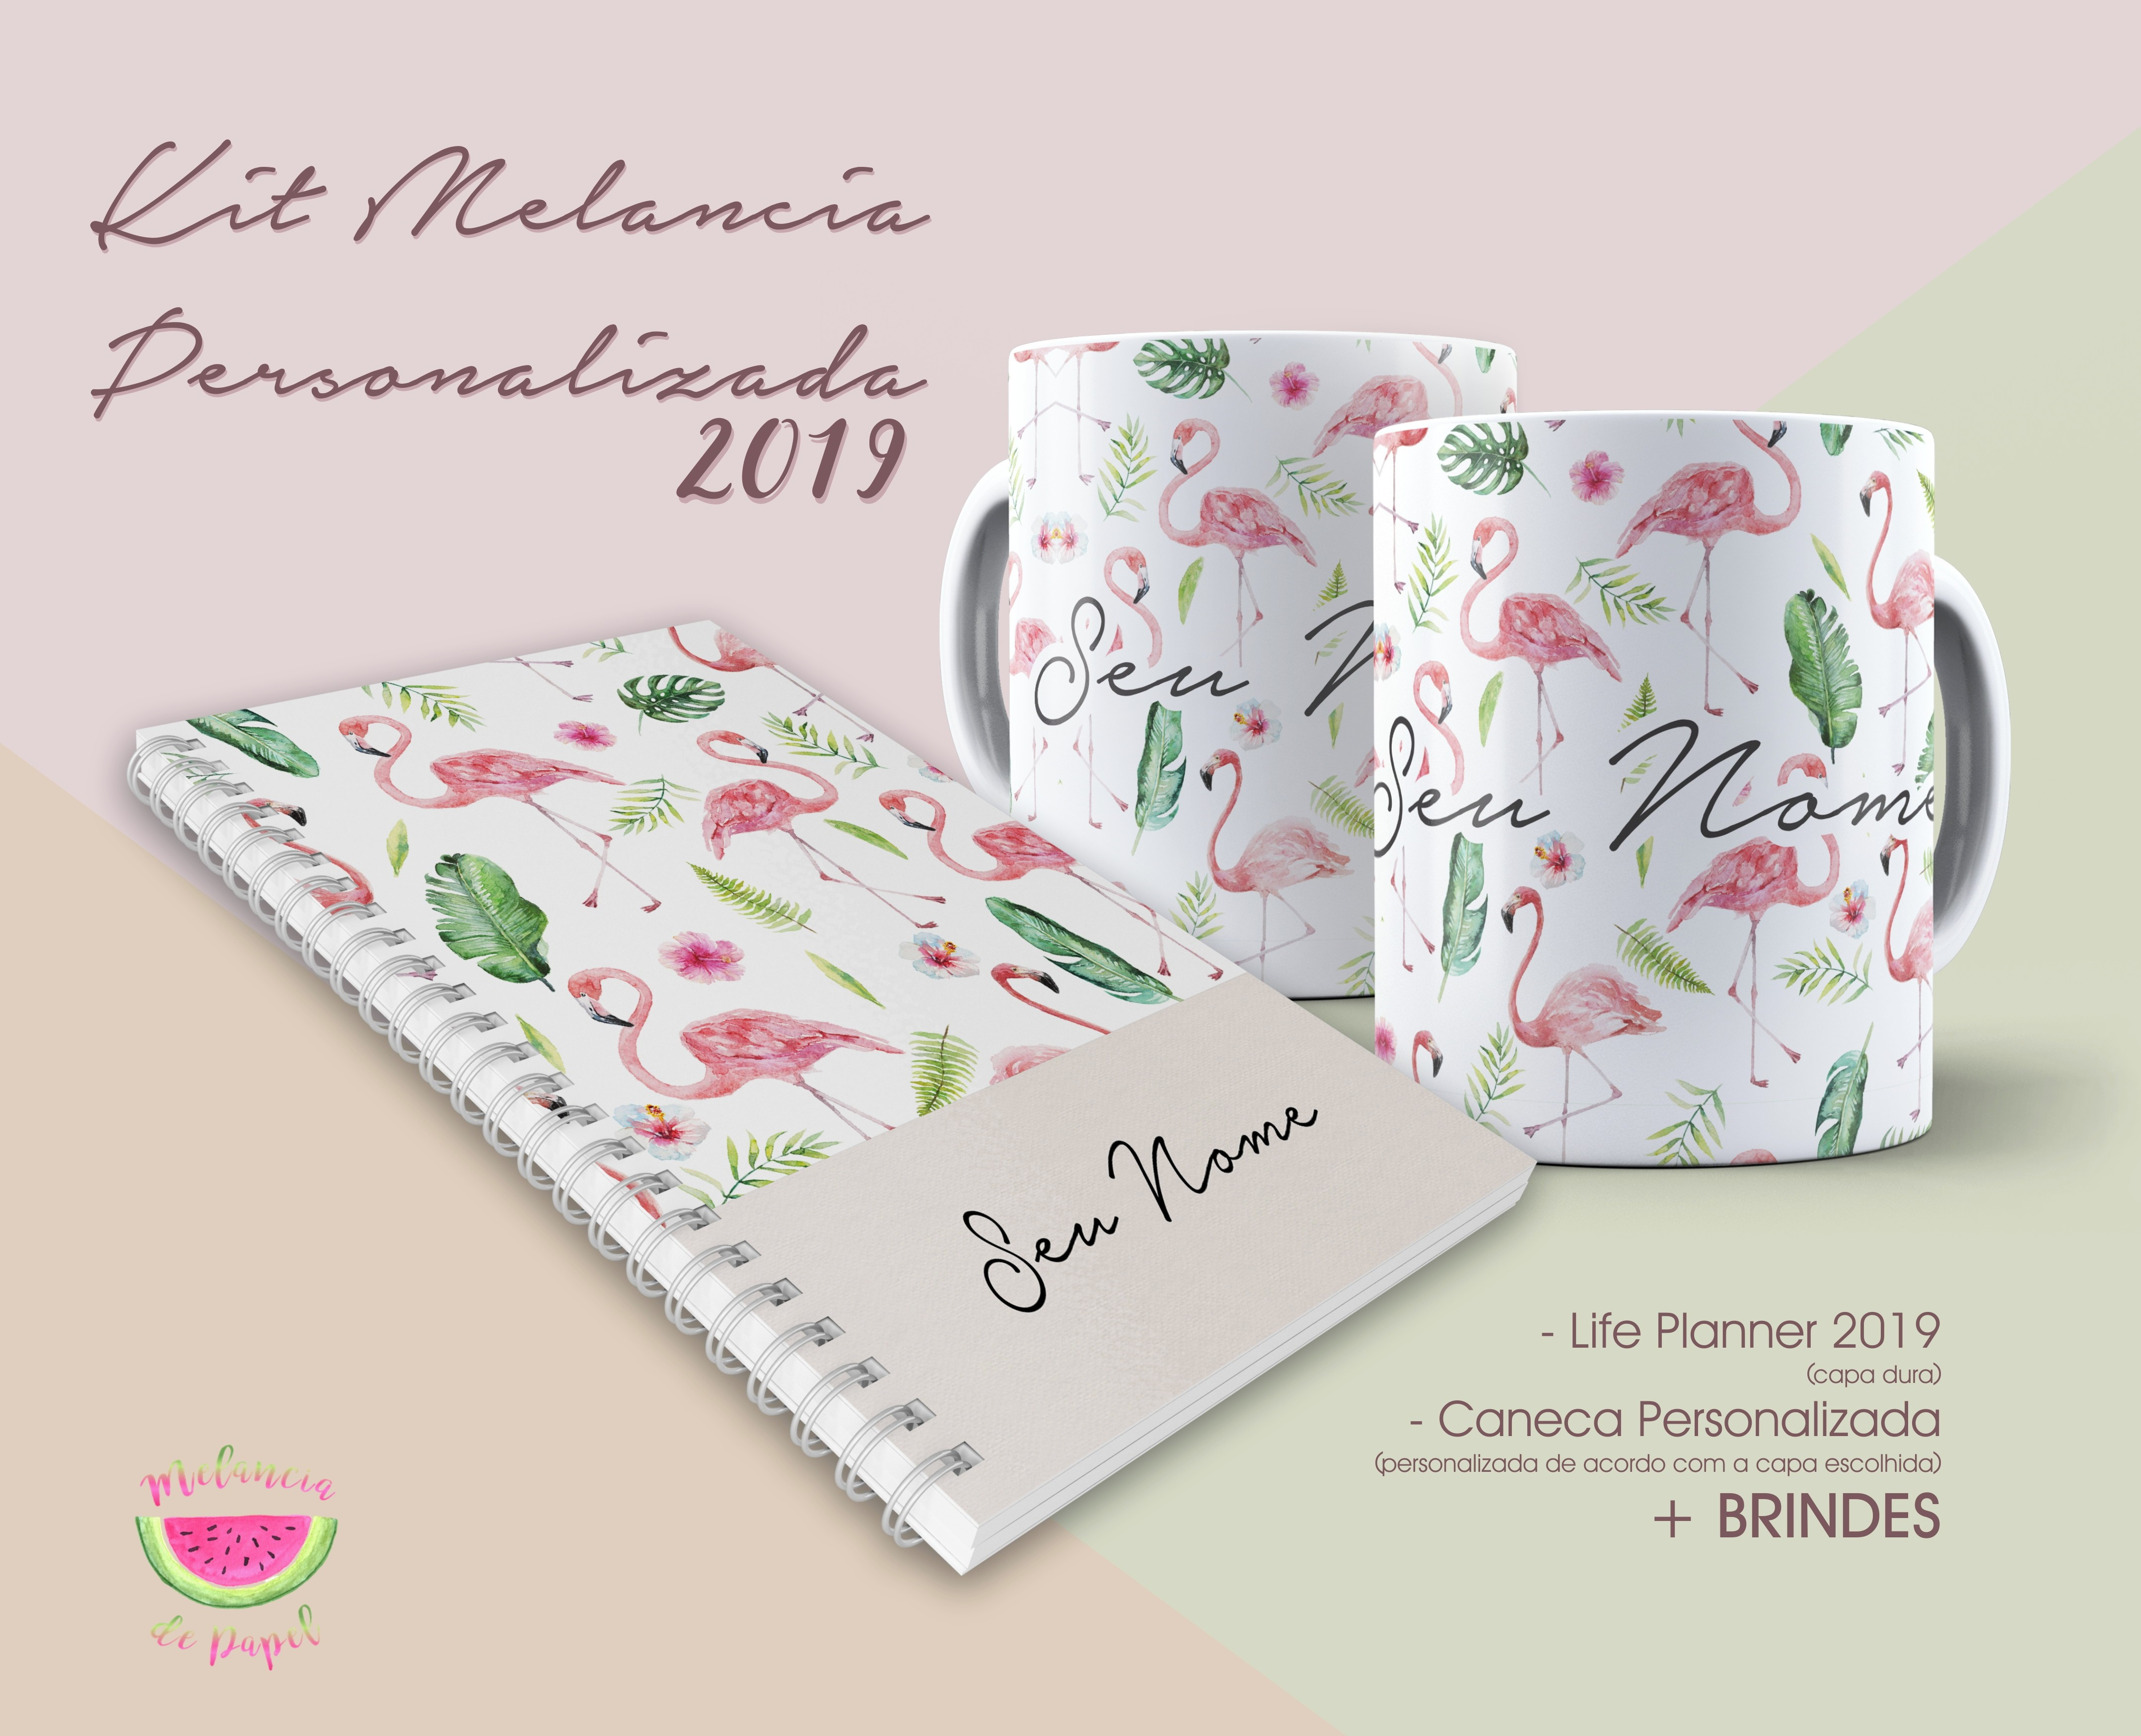 Calendario 2019 Feriados Oficiais Mejores Y Más Novedosos Life Planner 2019 No Elo7 Of Calendario 2019 Feriados Oficiais Actual Portal Do Governo Do Estado Do Piau­